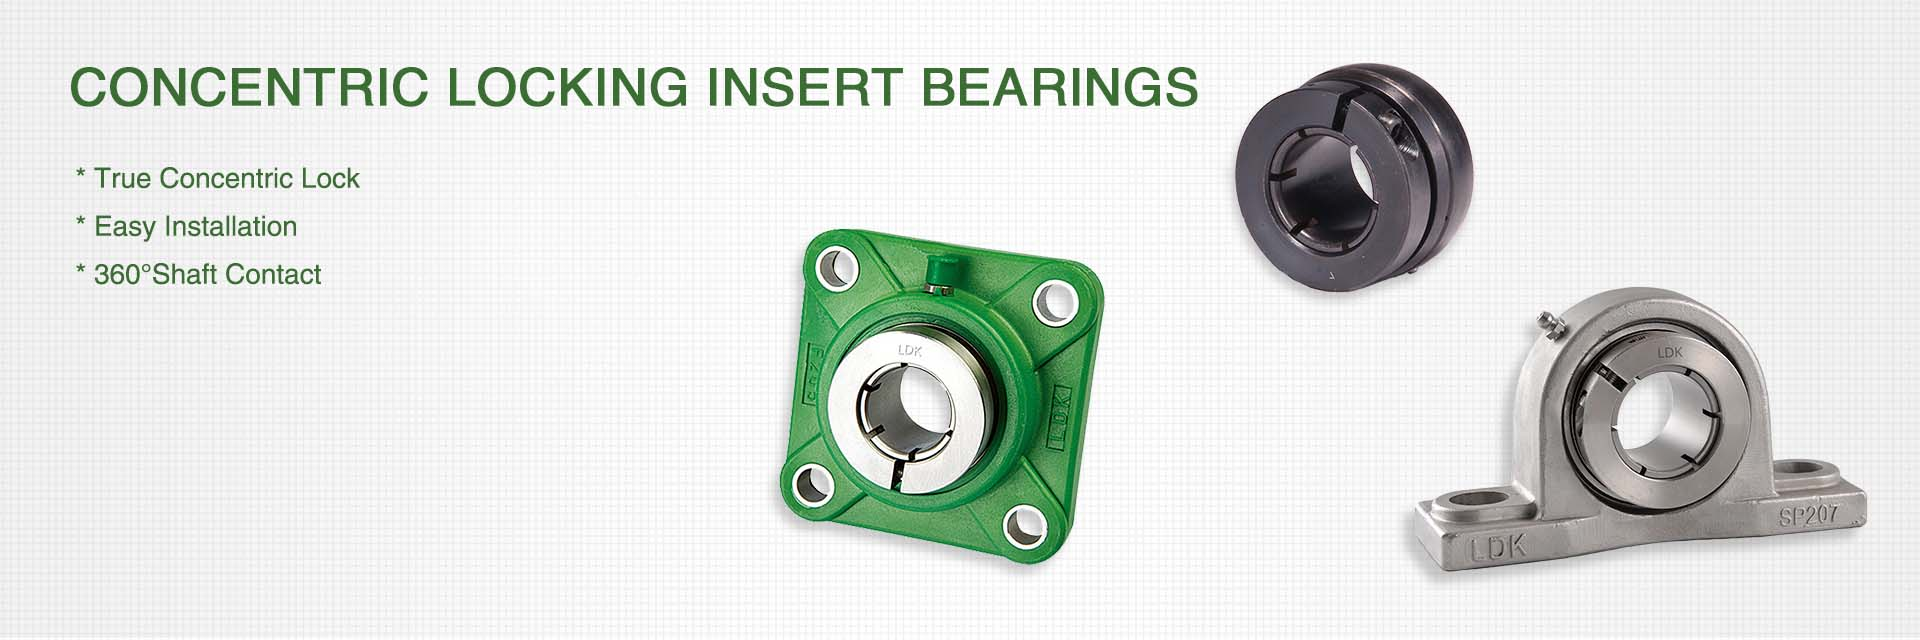 Concentric Locking Insert Bearings